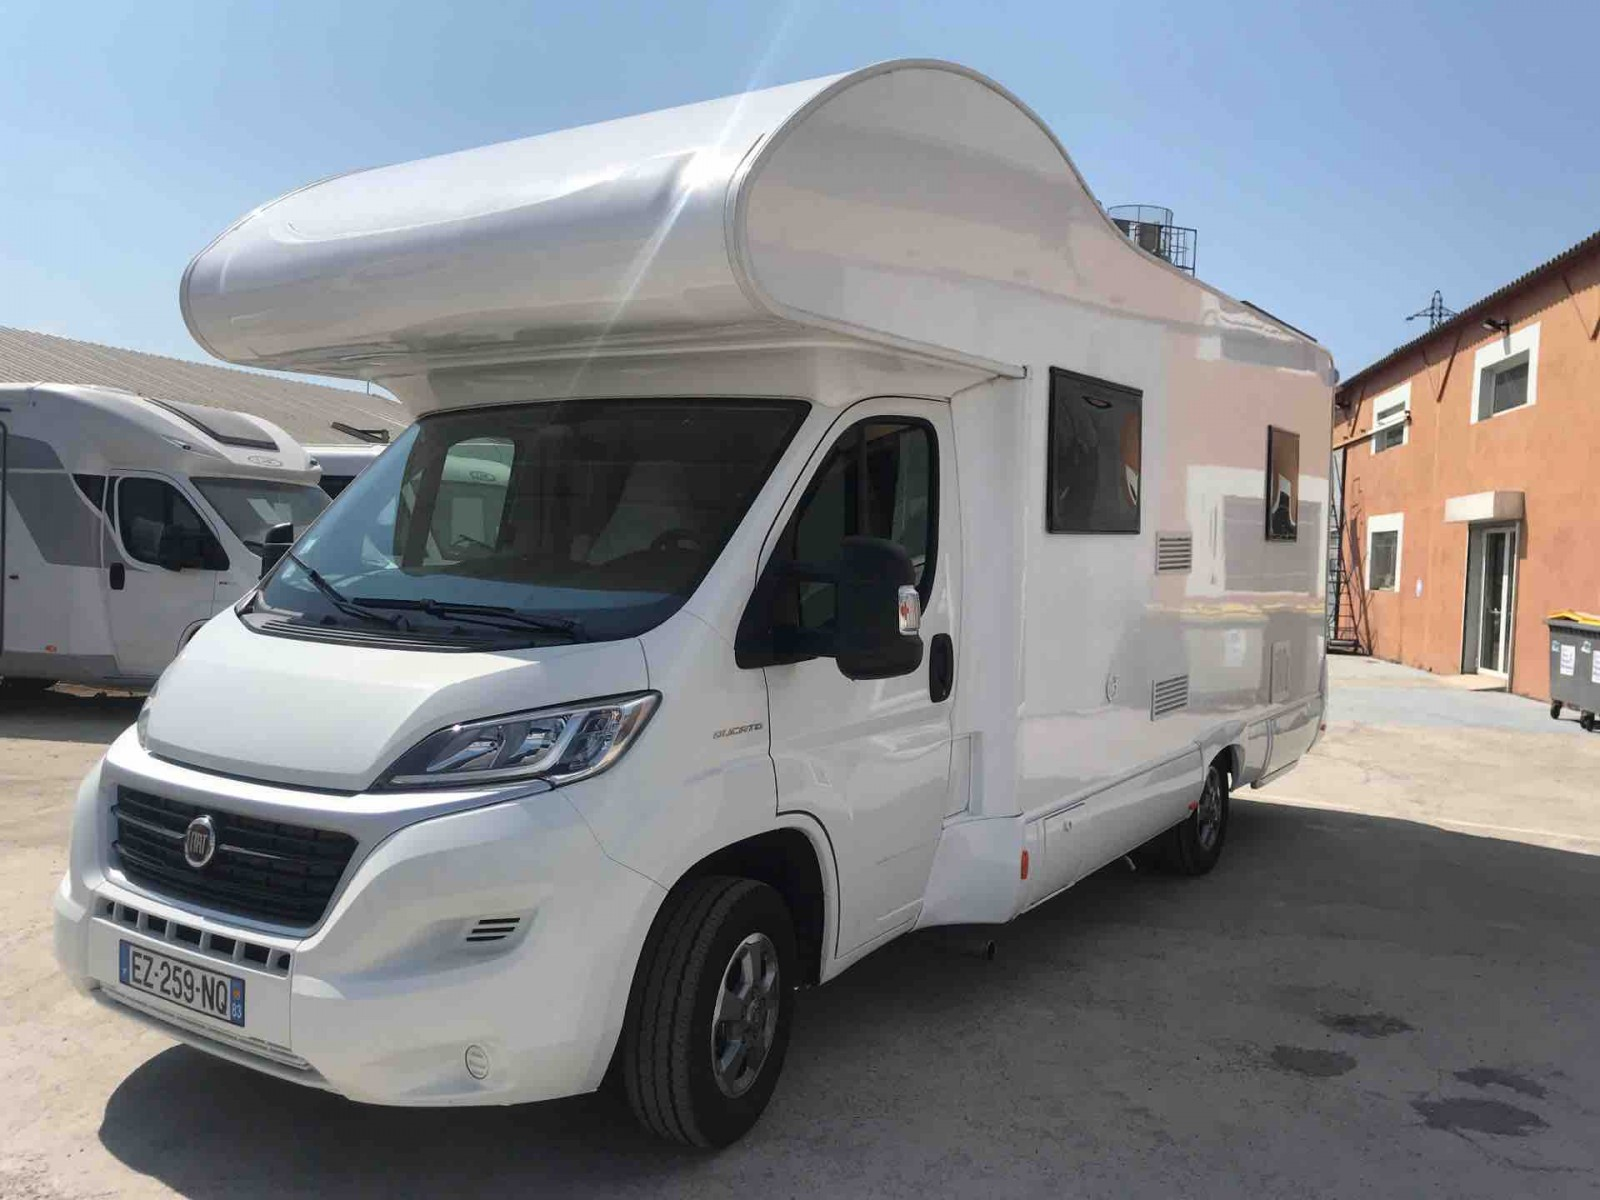 camping car d 39 occasion blucamp sky free pmr achat de camping car neuf et occasion sur toulon